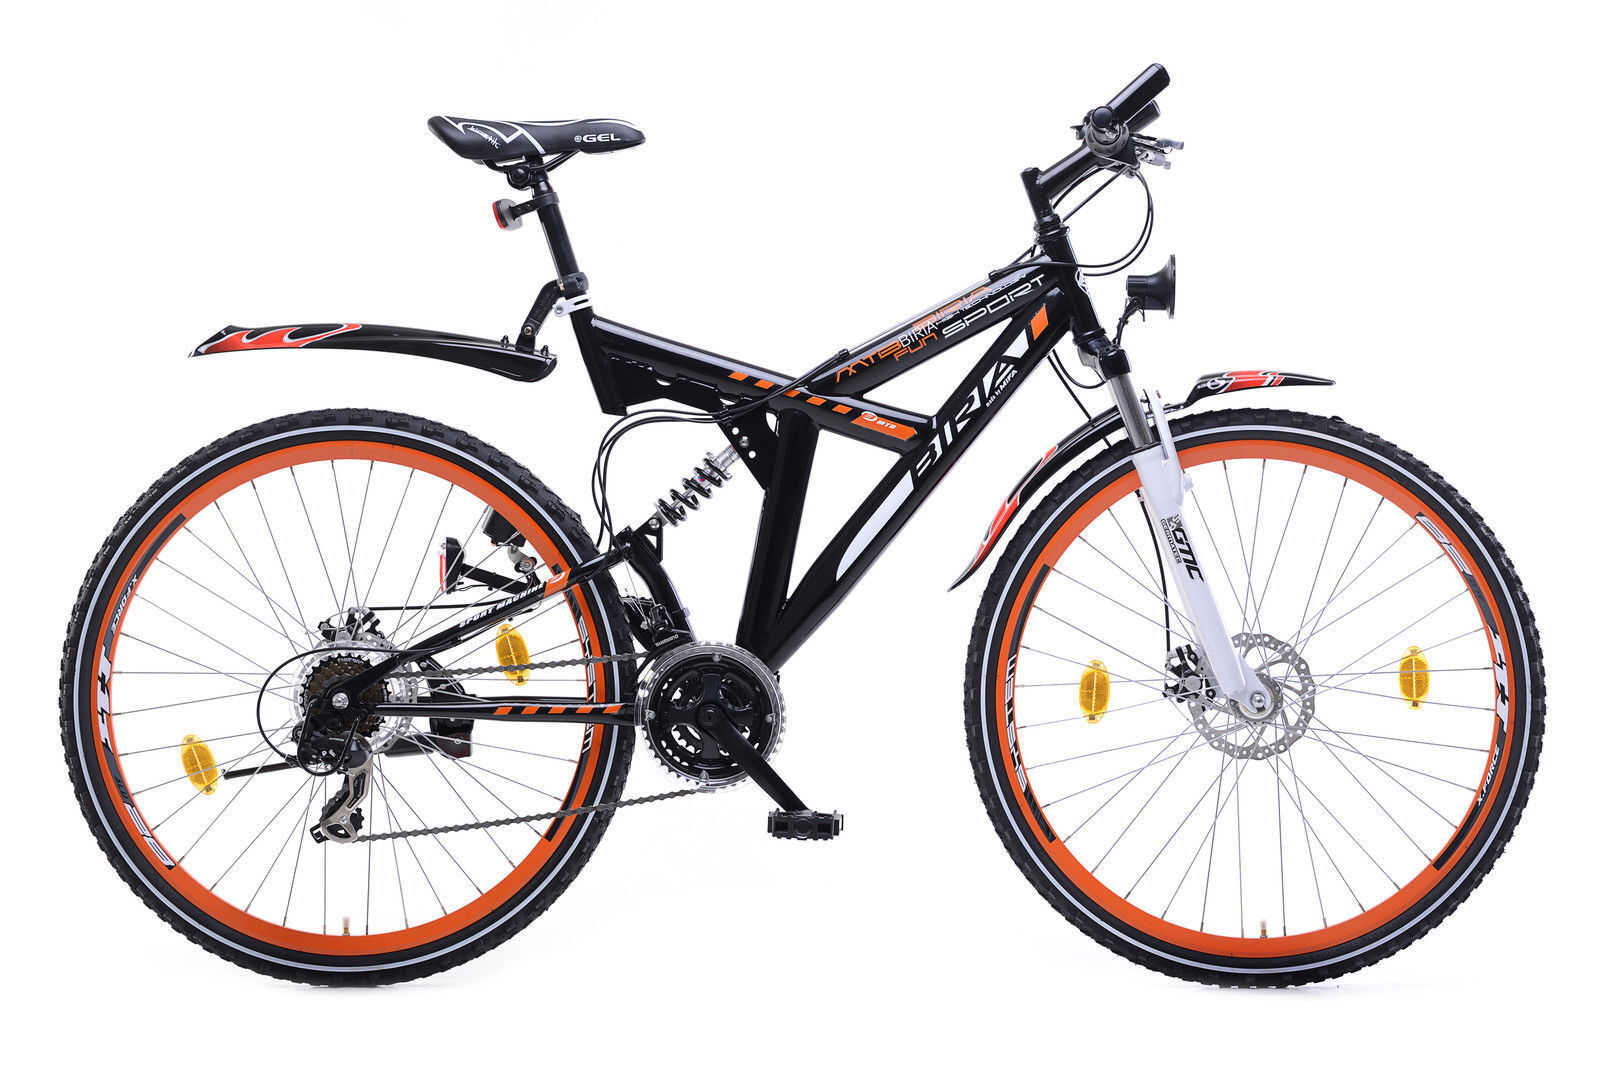 mifa 26 zoll downhill mtb 21 shimano fahrrad mountainbike. Black Bedroom Furniture Sets. Home Design Ideas